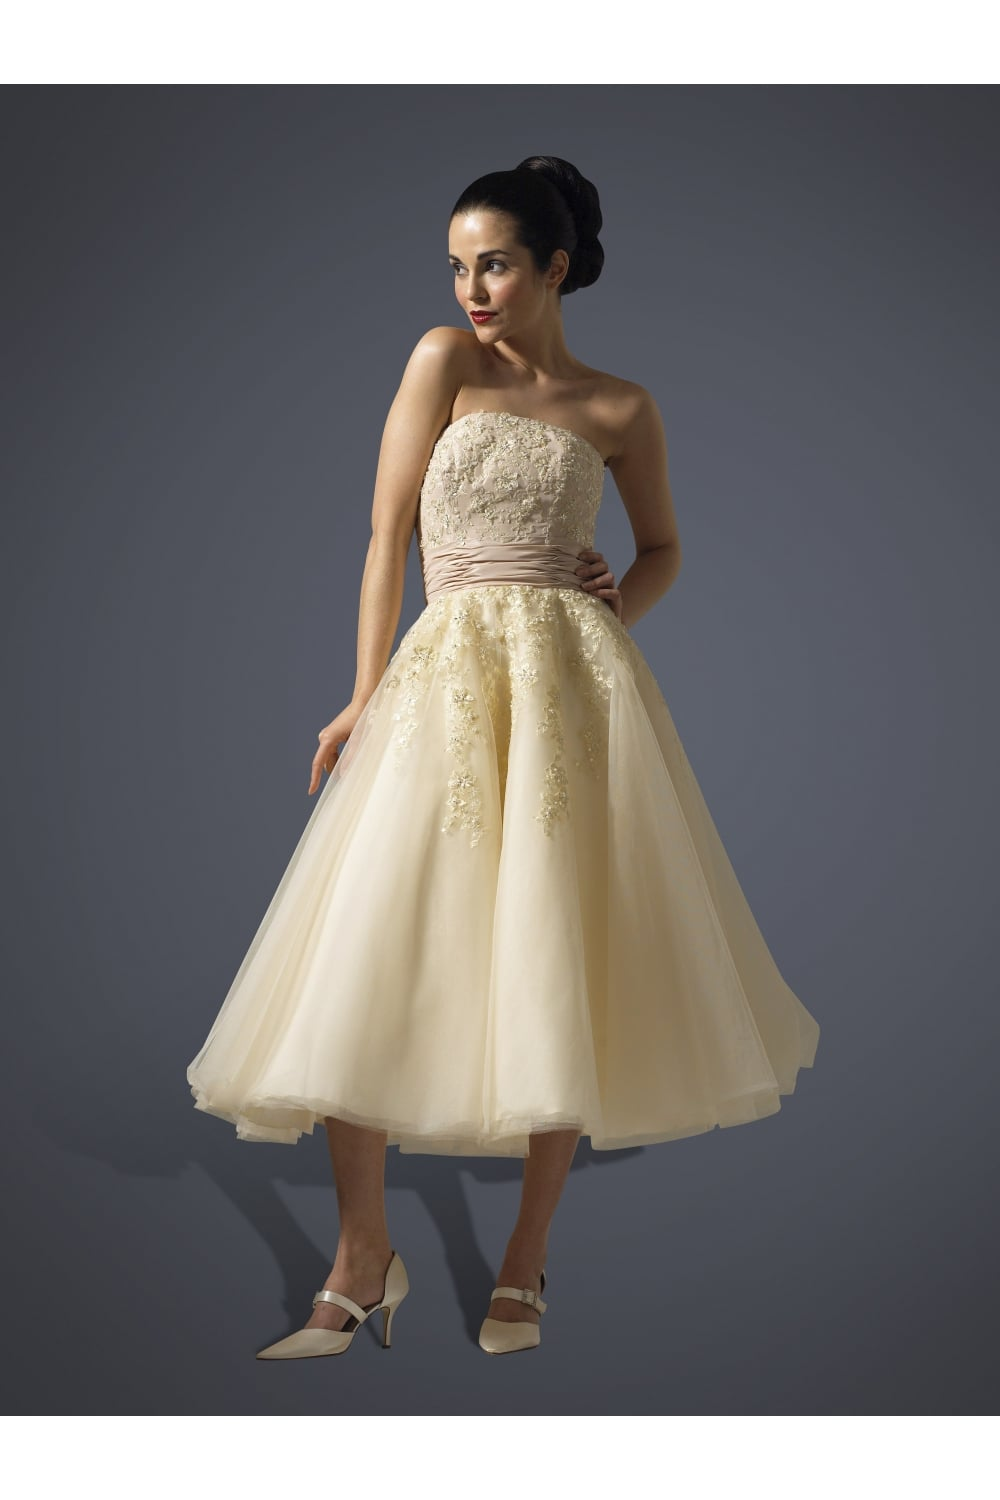 Justina tea length wedding dress 1950s style w925 for Belle style wedding dress